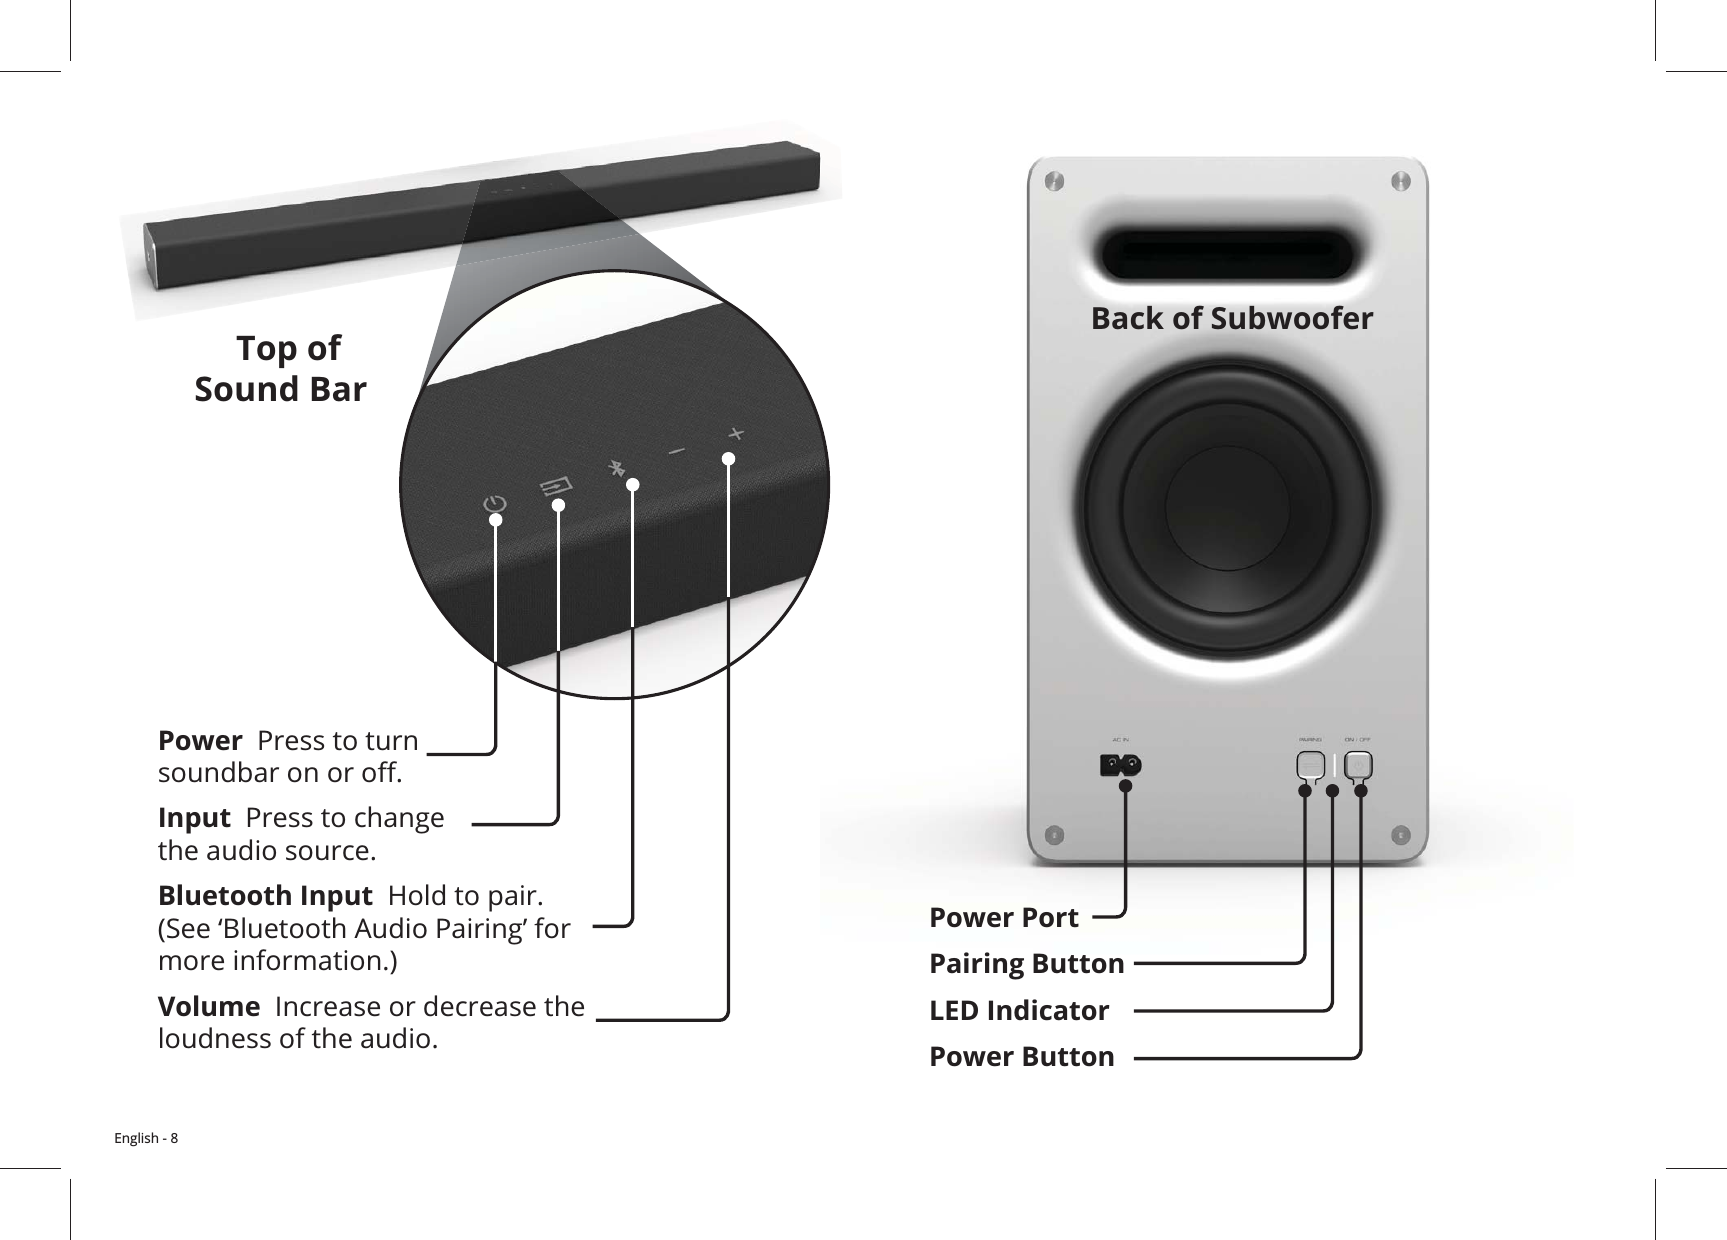 medion sound bar user manual